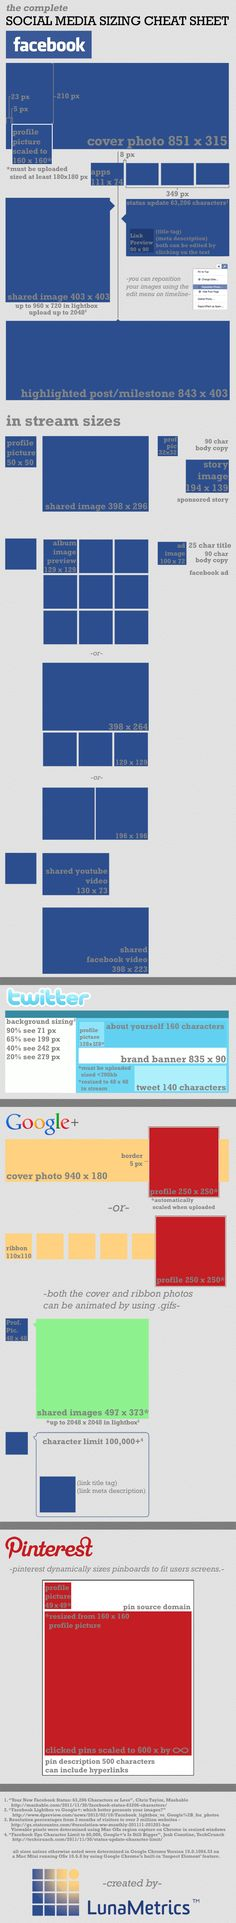 The Complete Social Media Sizing Cheat Sheet [#infographic]